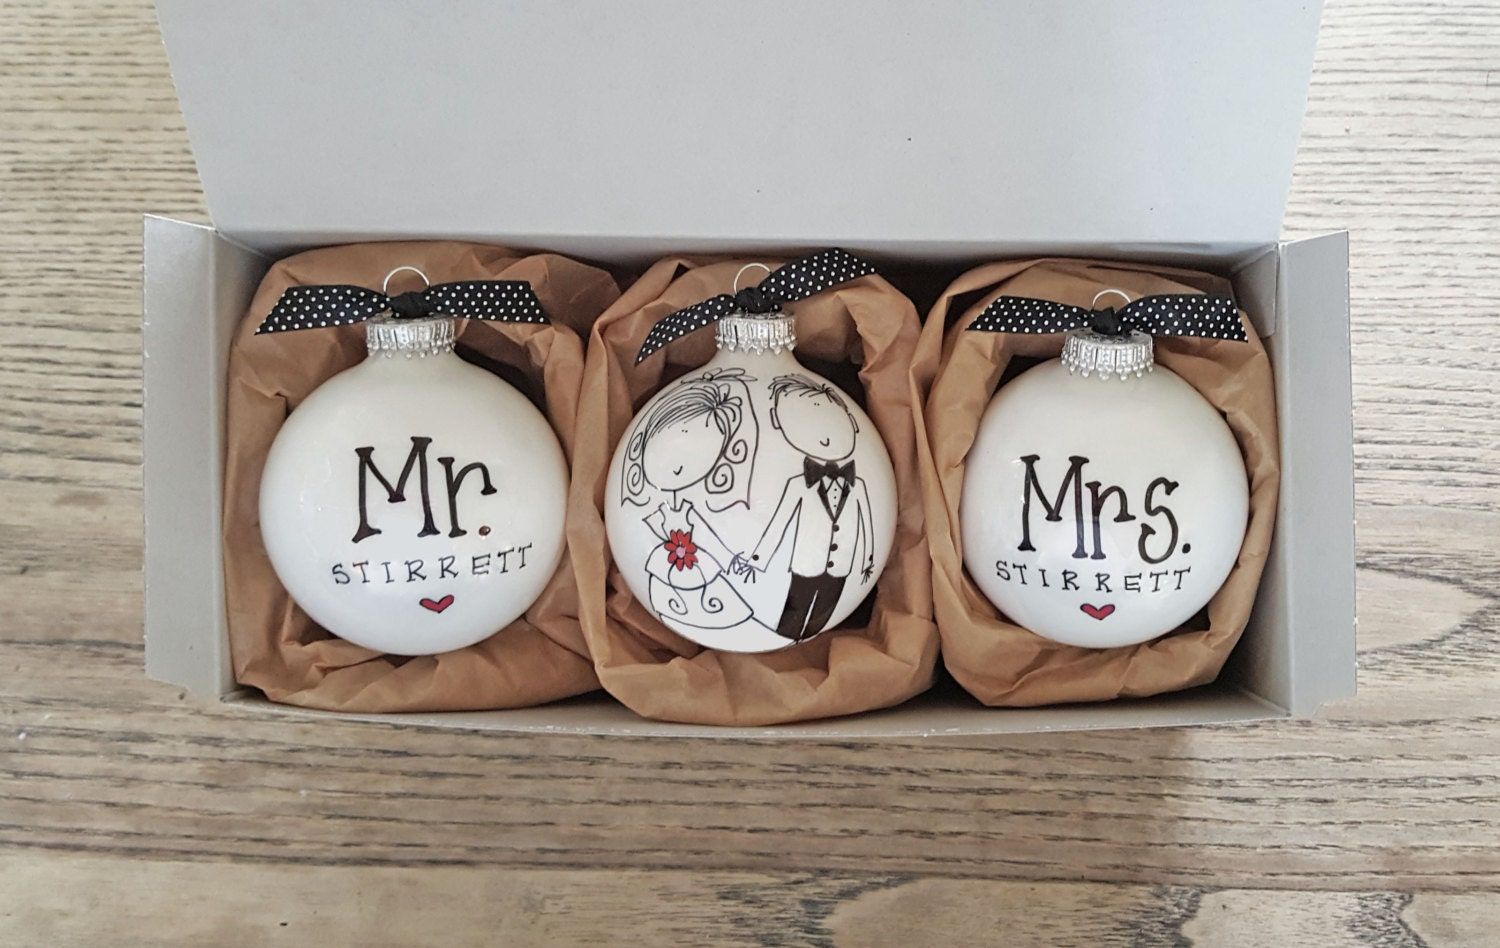 Wedding Gift For A Couple: Wedding Gift Gift For The Couple Mr. And Mrs. Gift